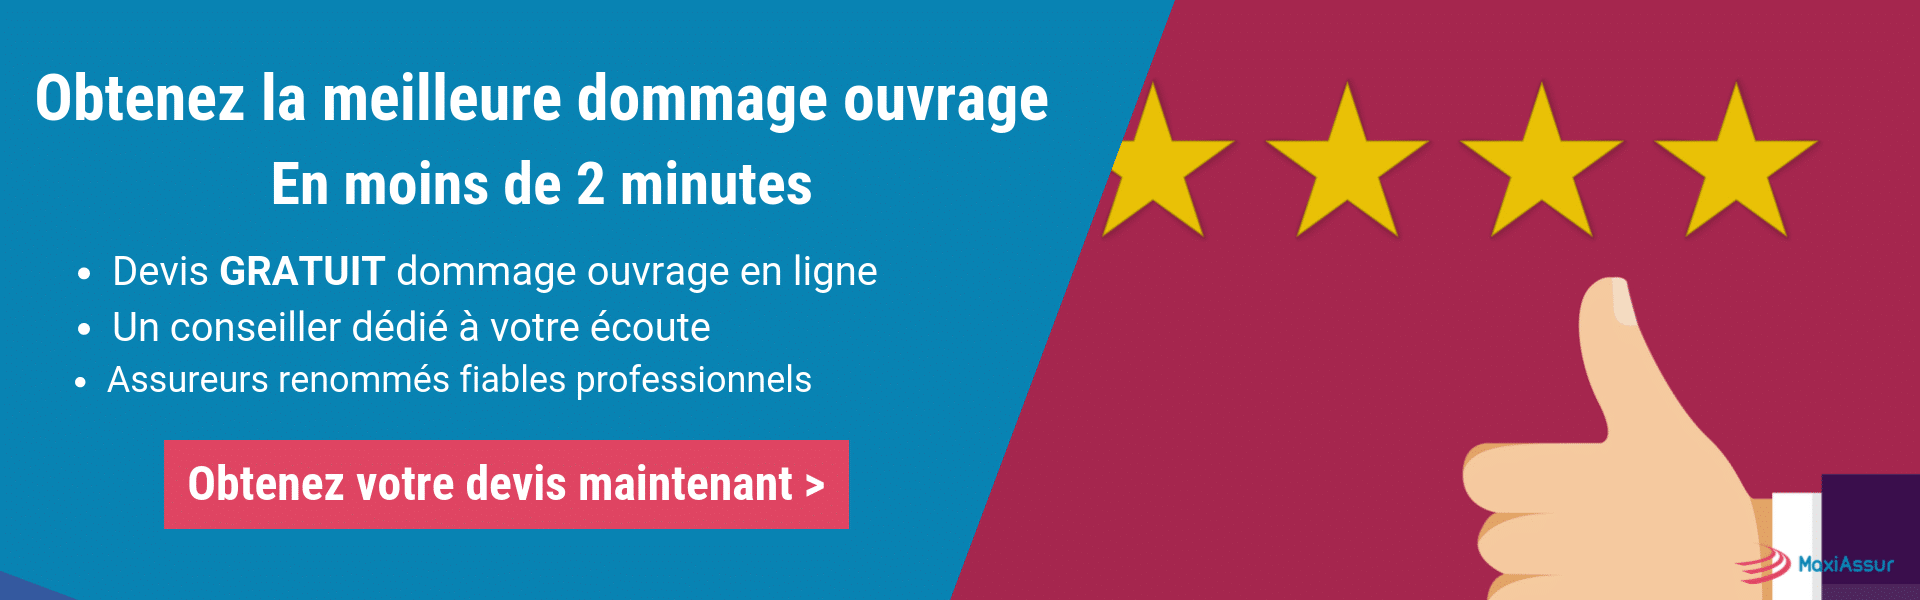 Meilleure assurance dommages ouvrage